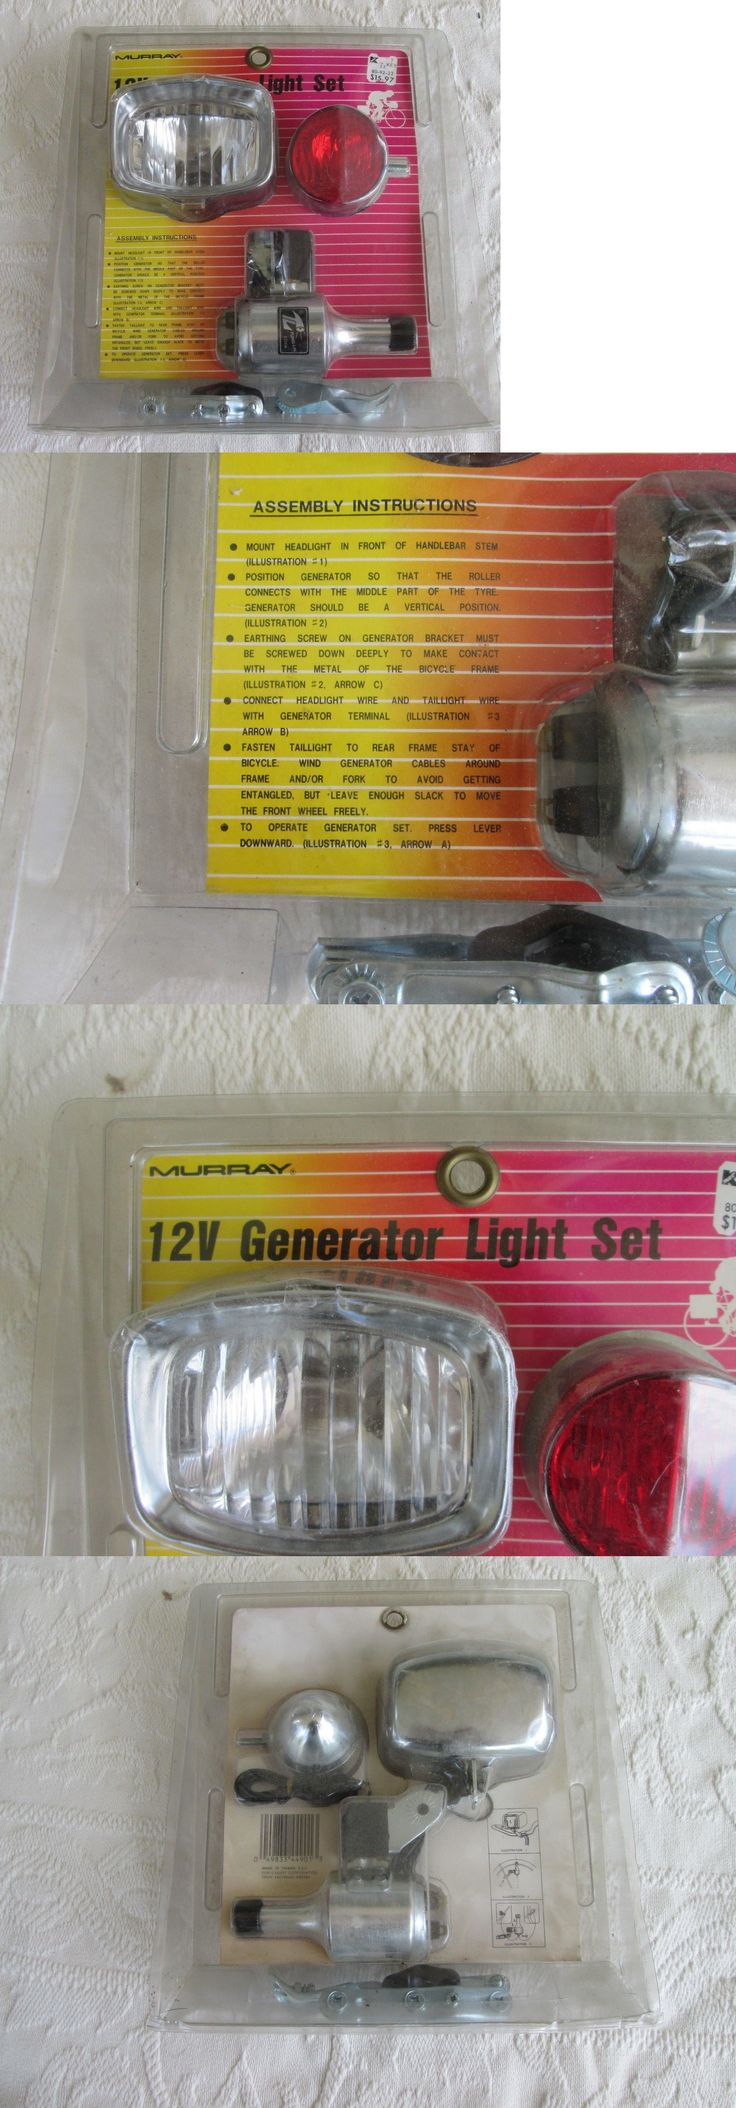 Lights and Reflectors 22689: New Nos Vintage Chrome Bicycle 12V Generator Light Set By Murray -> BUY IT NOW ONLY: $33.99 on eBay!